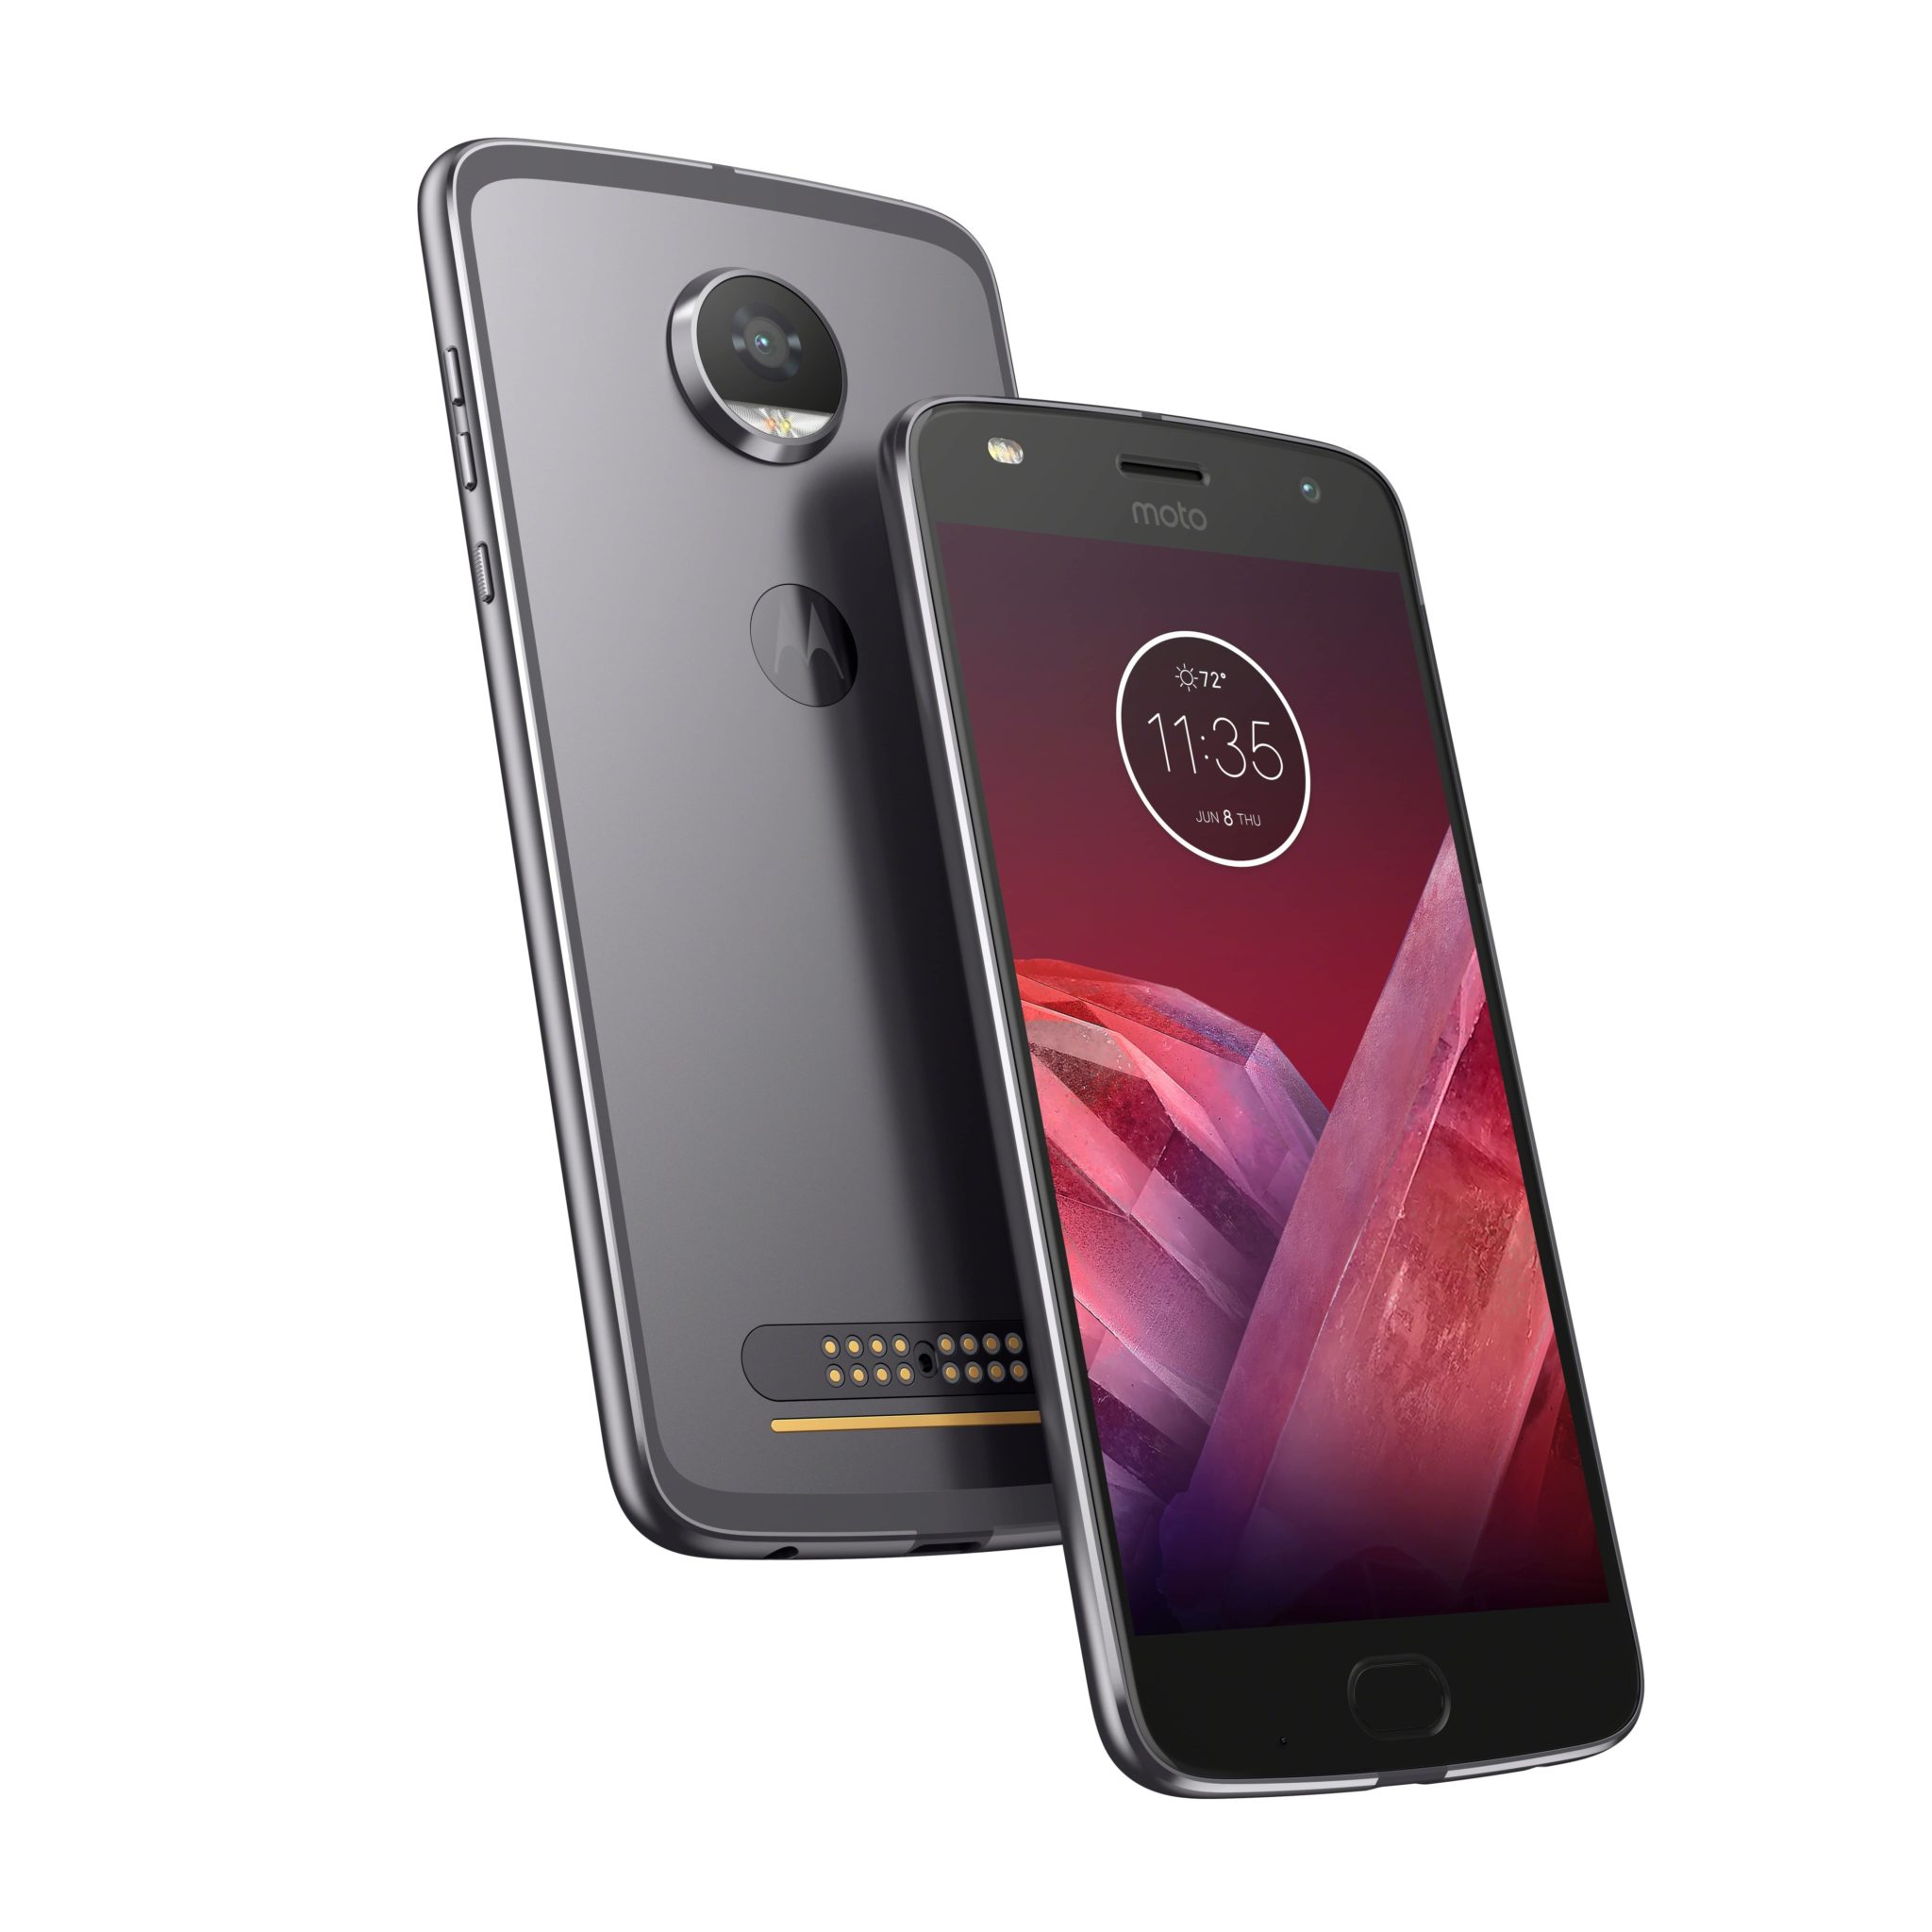 Moto Z2 Play is official and comes with new Moto Mods